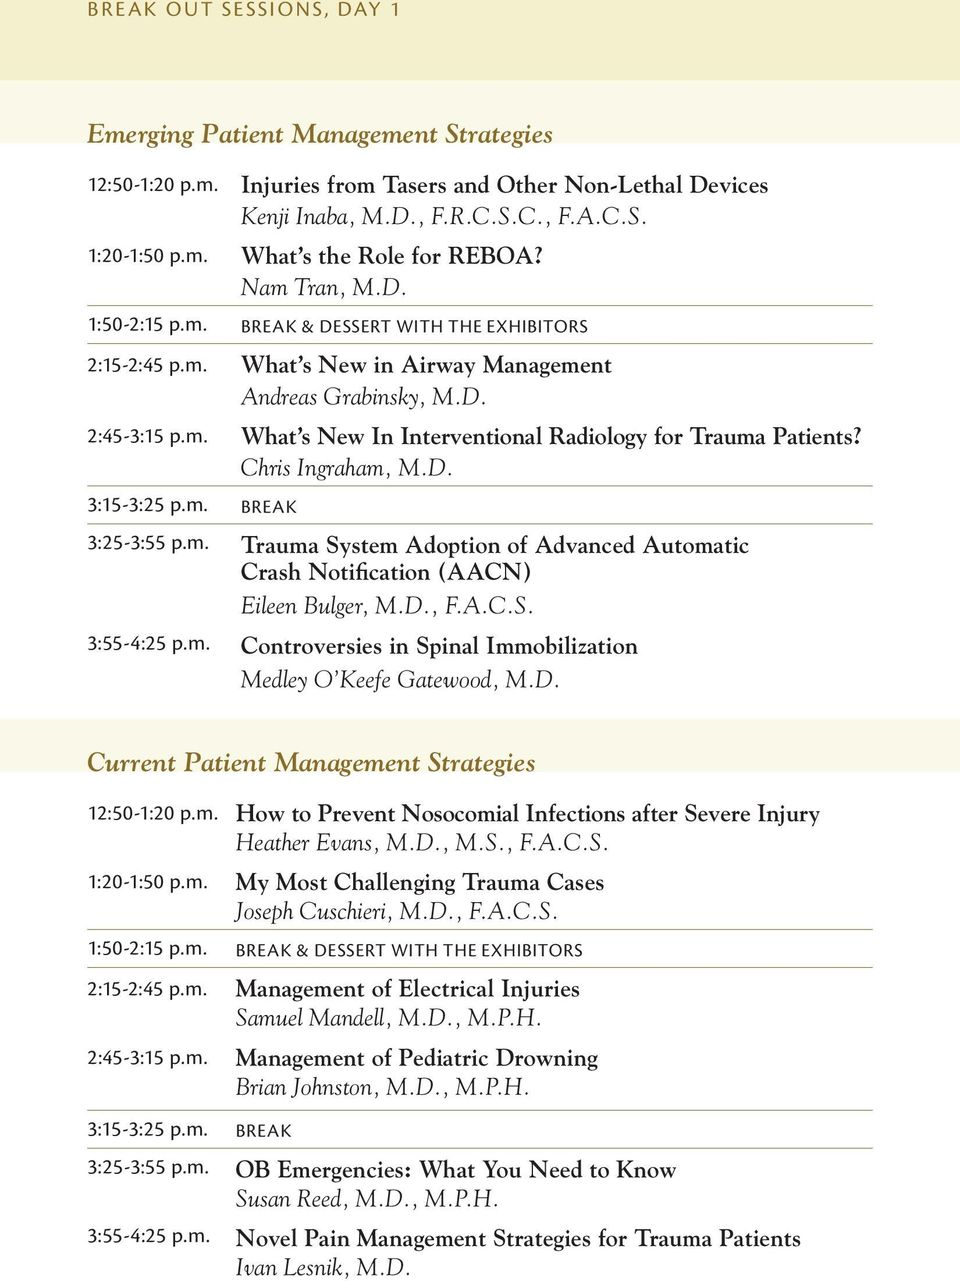 Chris Ingraham, M.D. 3:15-3:25 p.m. BREAK 3:25-3:55 p.m. Trauma System Adoption of Advanced Automatic Crash Notification (AACN) Eileen Bulger, M.D., F.A.C.S. 3:55-4:25 p.m. Controversies in Spinal Immobilization Medley O Keefe Gatewood, M.